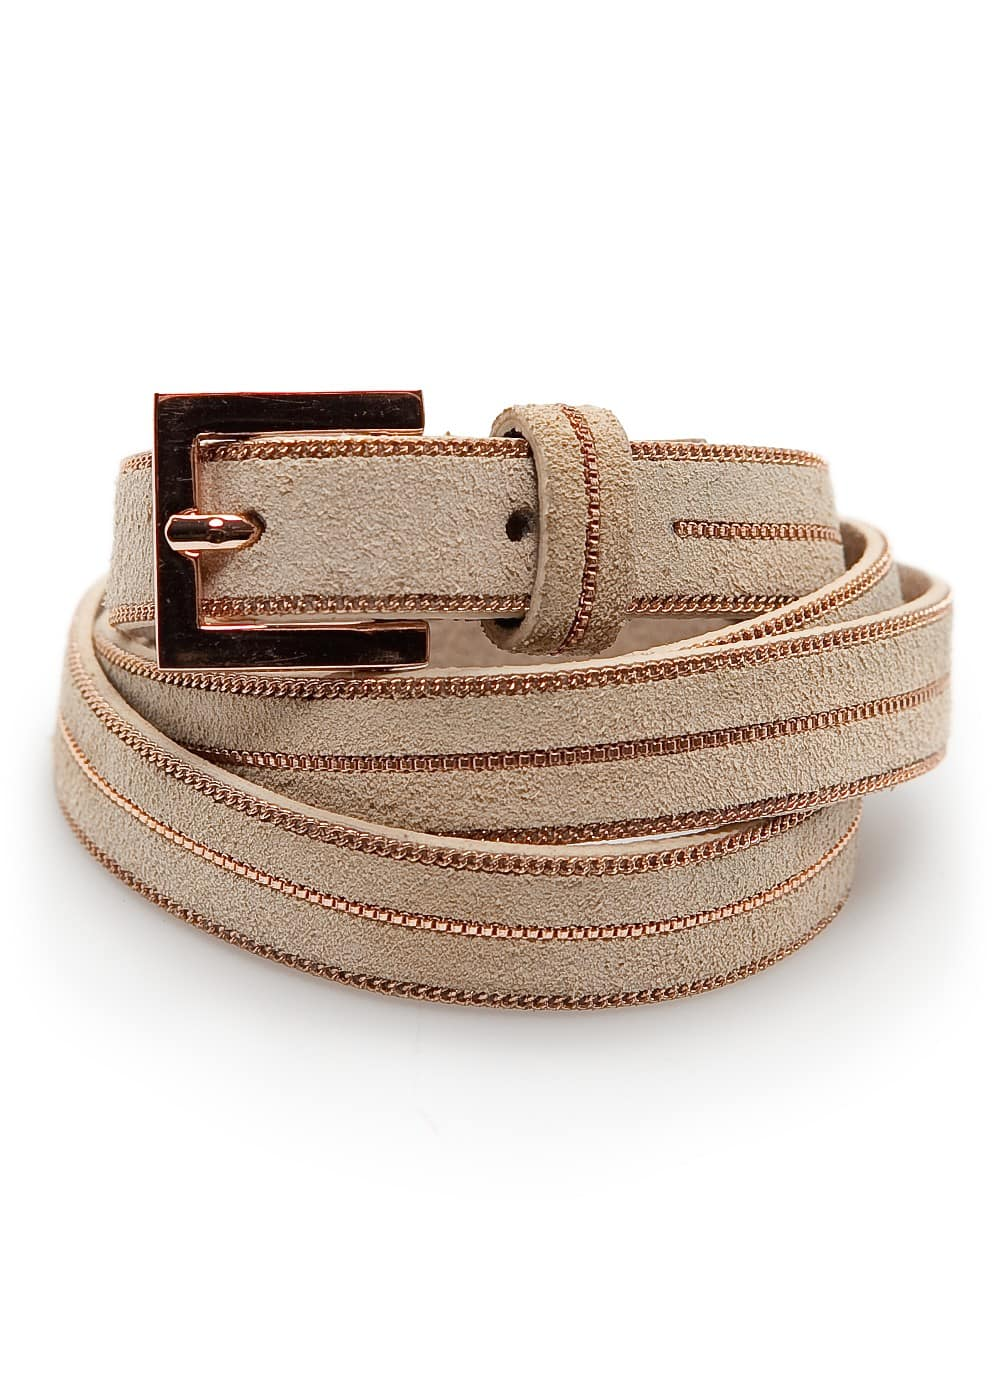 Slim suede chain belt